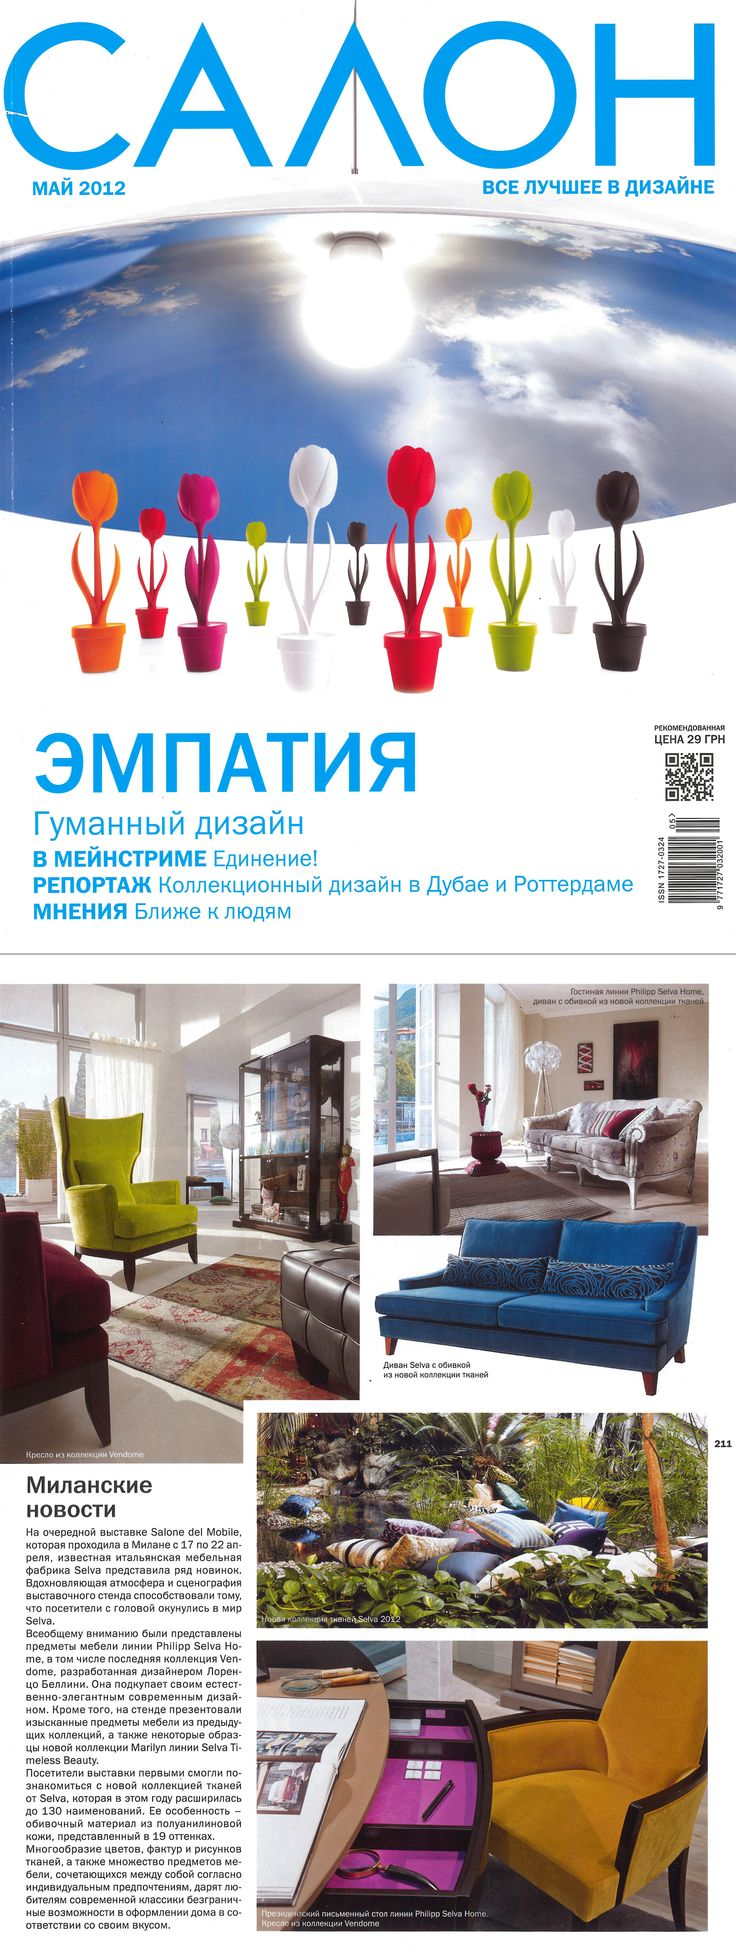 Salon Magazine, Ukraine - May 2012